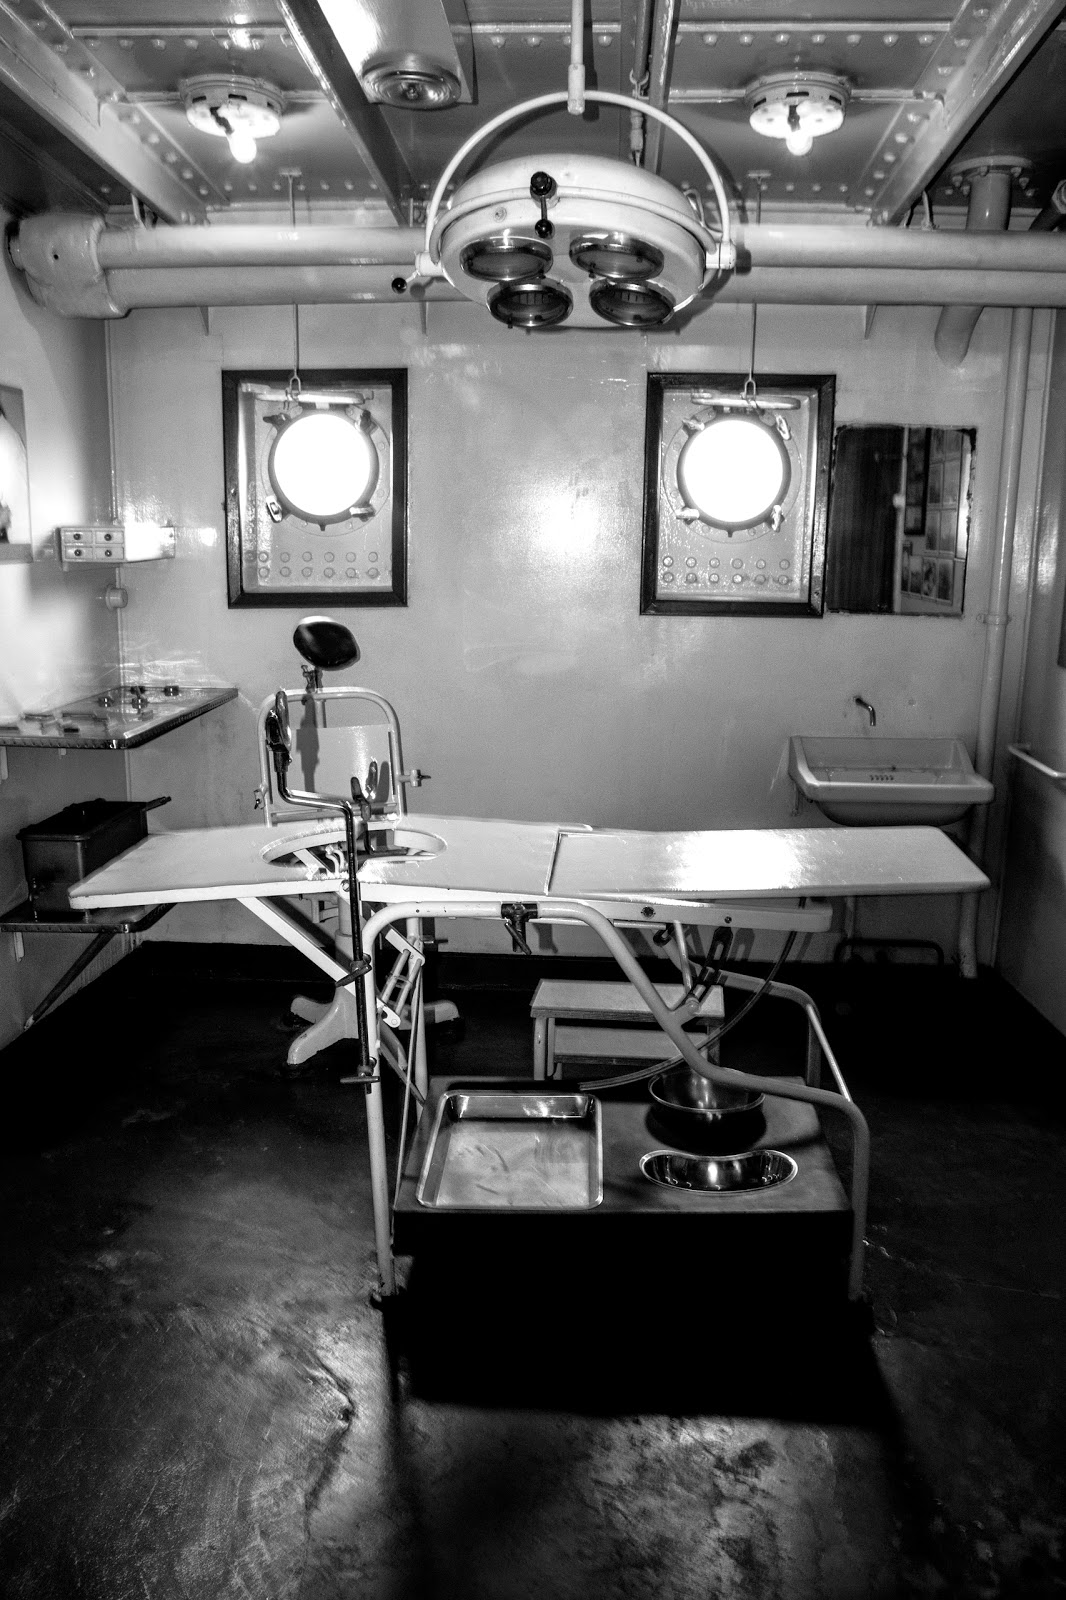 O Navio Gil Eannes, O Navio Gil Eannes. Hospital Ship Museum. Horror Equipment